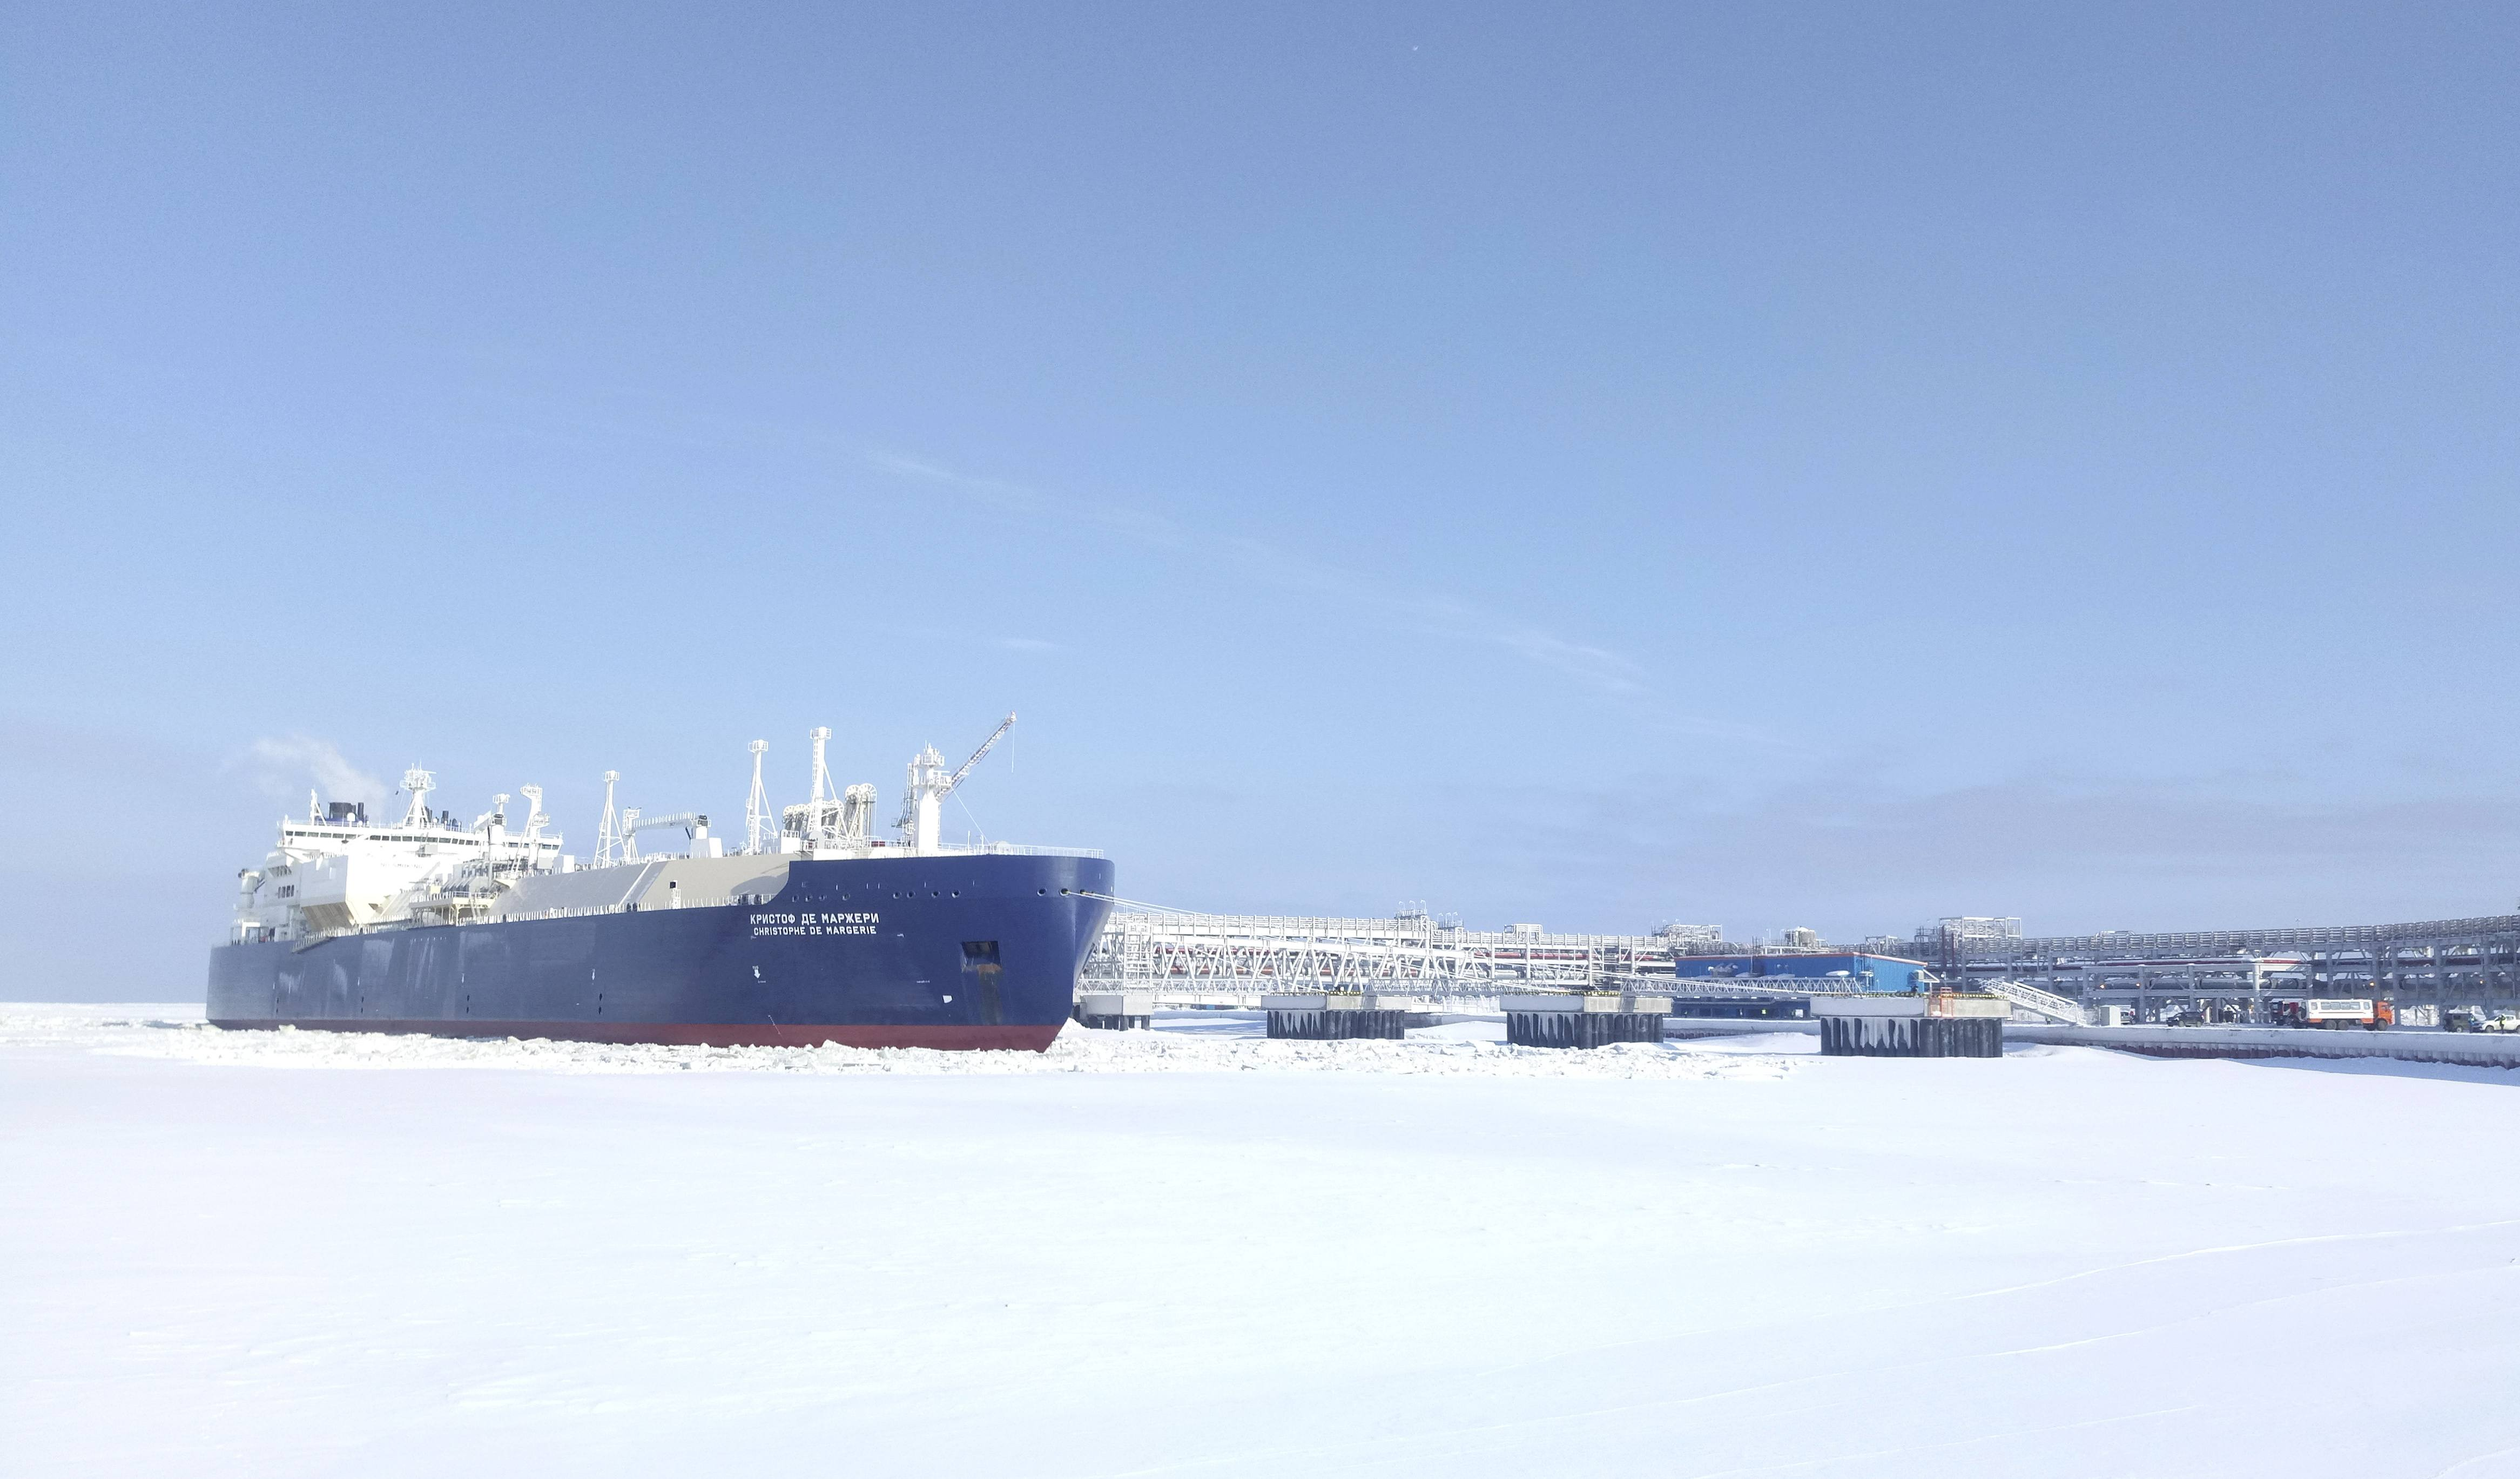 More cargo finds way through Arctic waters, up Siberian rivers